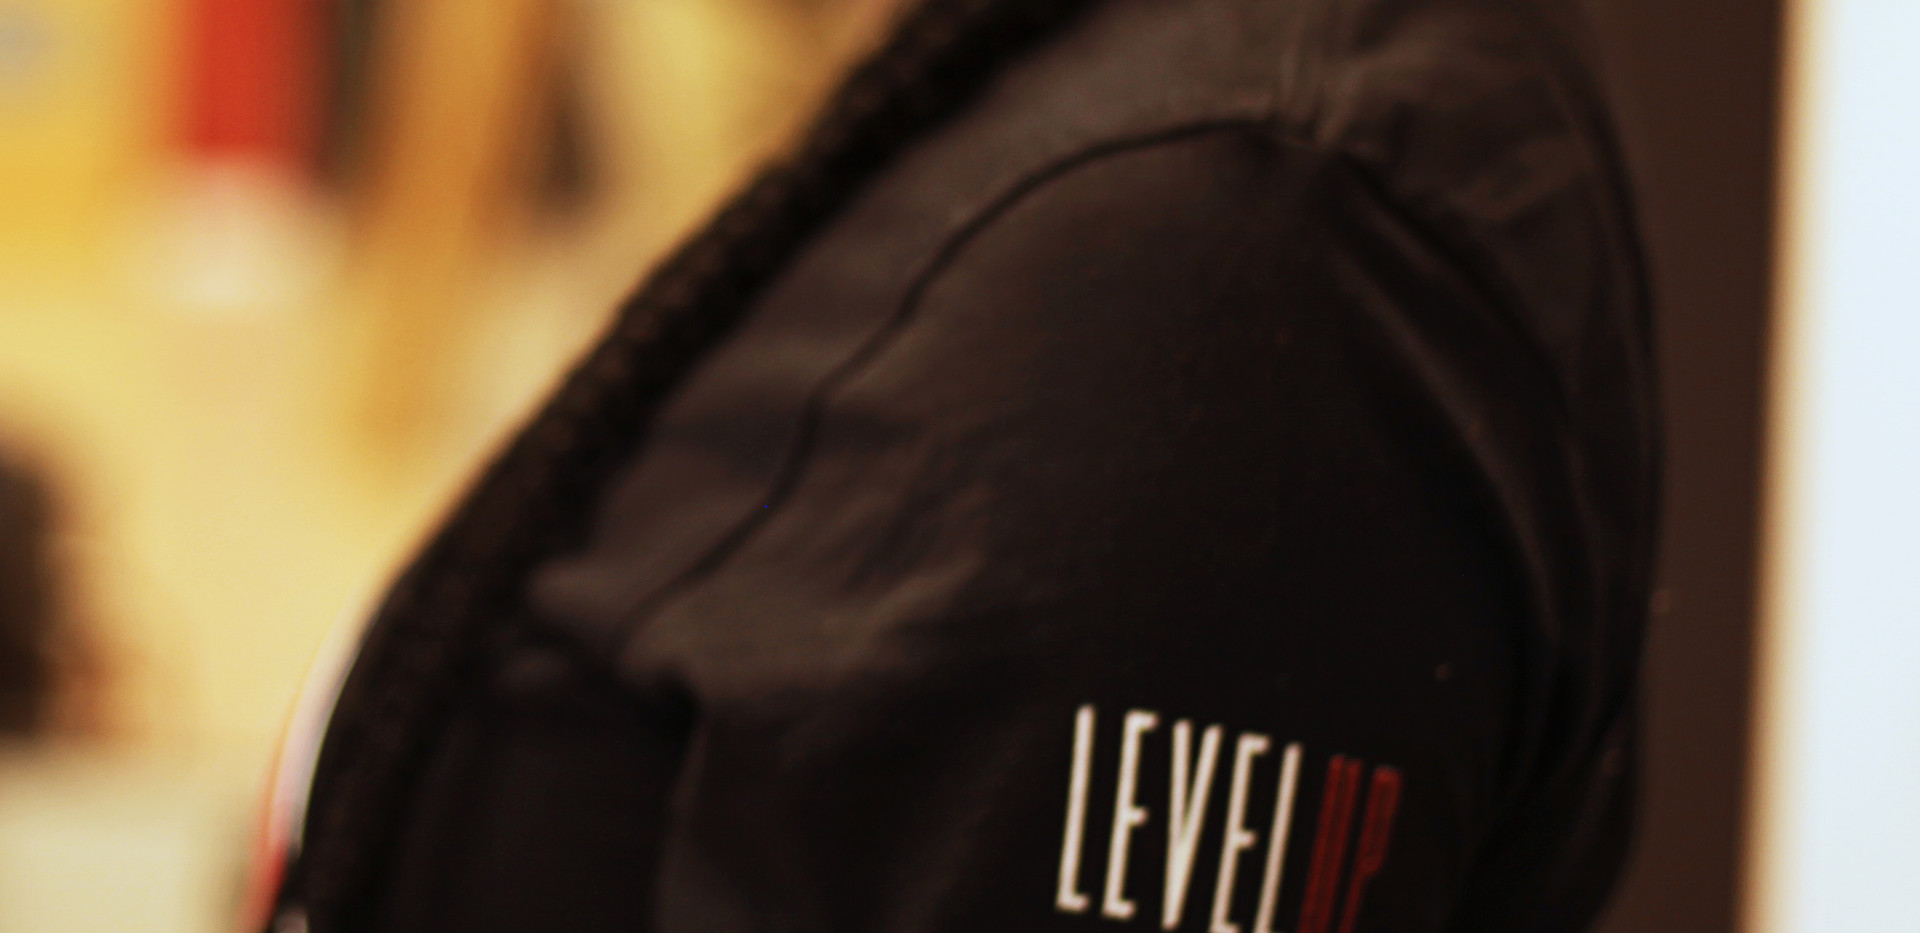 levelup london2.jpg